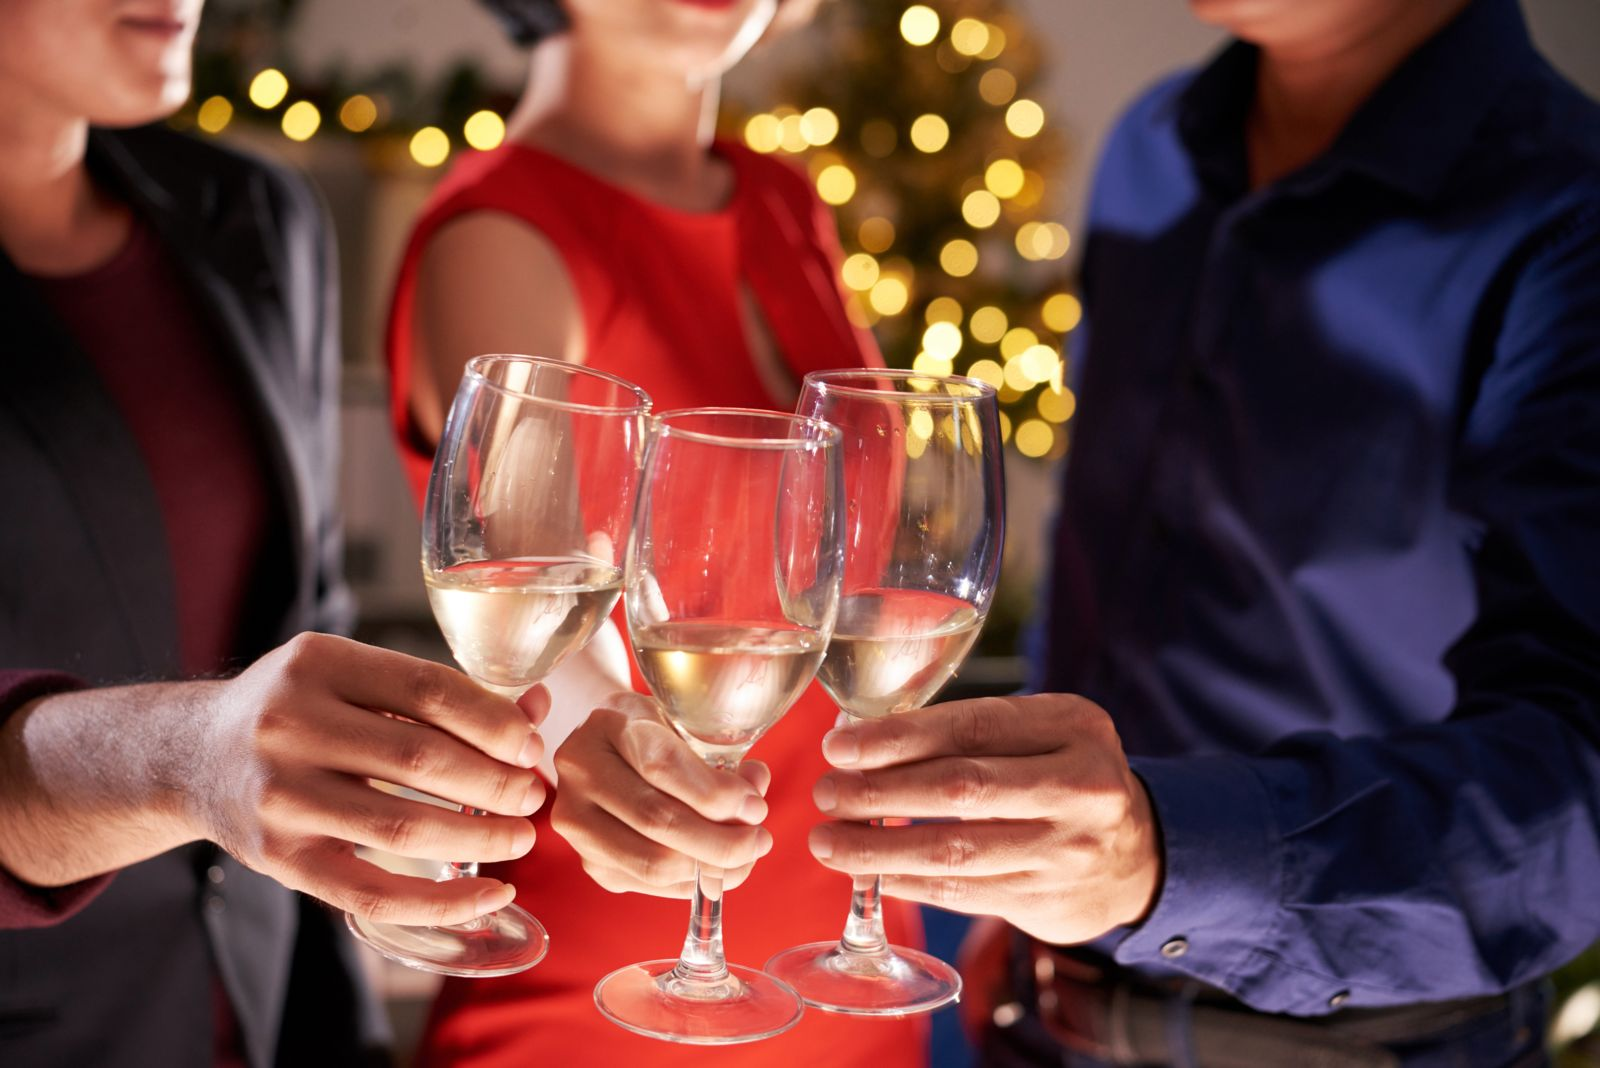 People Drinking Alcohol at Holiday Party